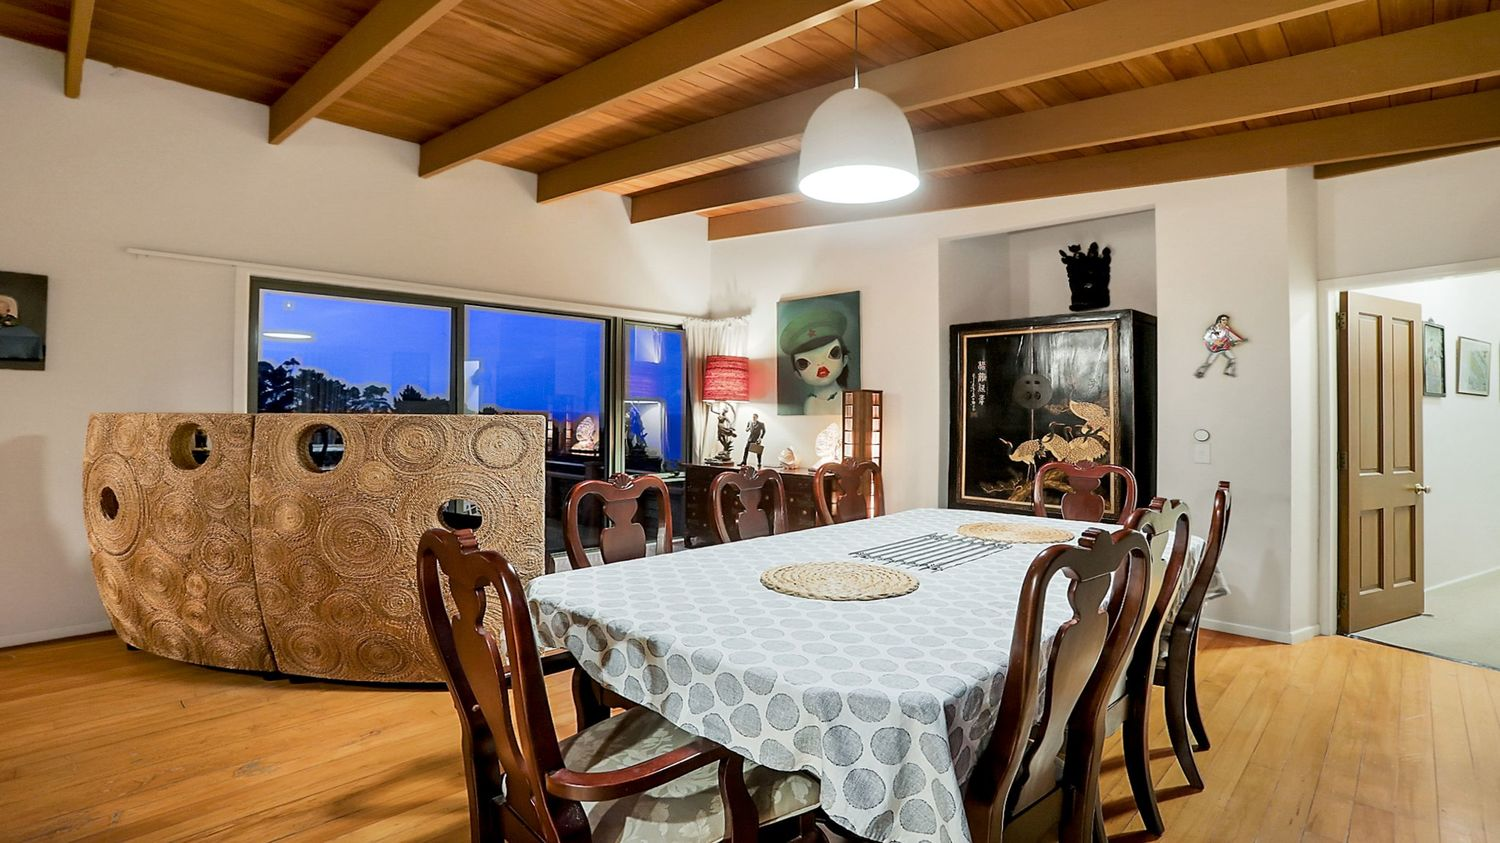 23._Seaview_with_dining_table_and_chairs_1500x843.jpeg